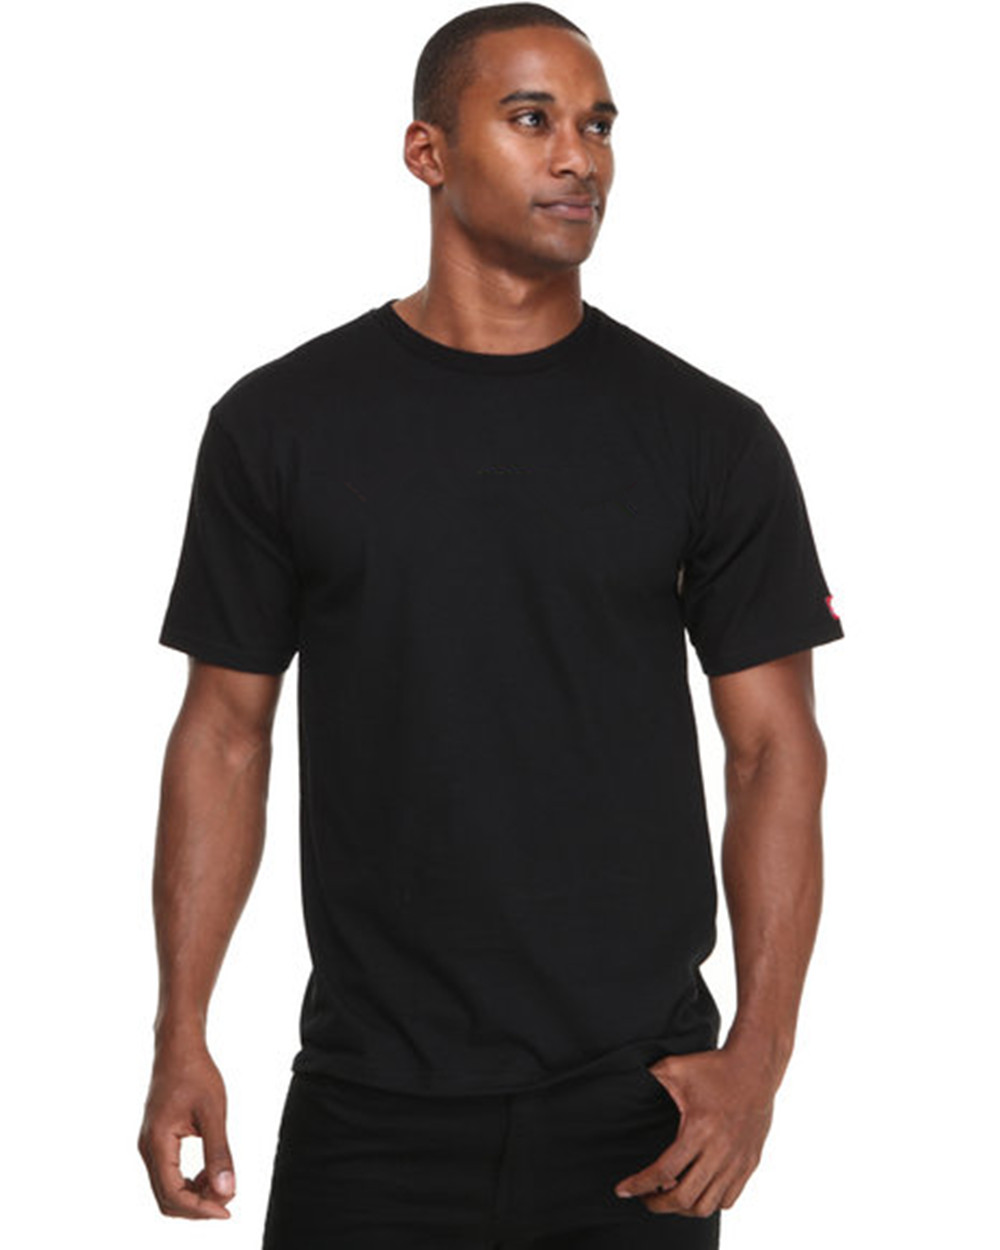 Mens Blank High Quality Bamboo Dry Fit T-shirt Wholesale - Buy ...